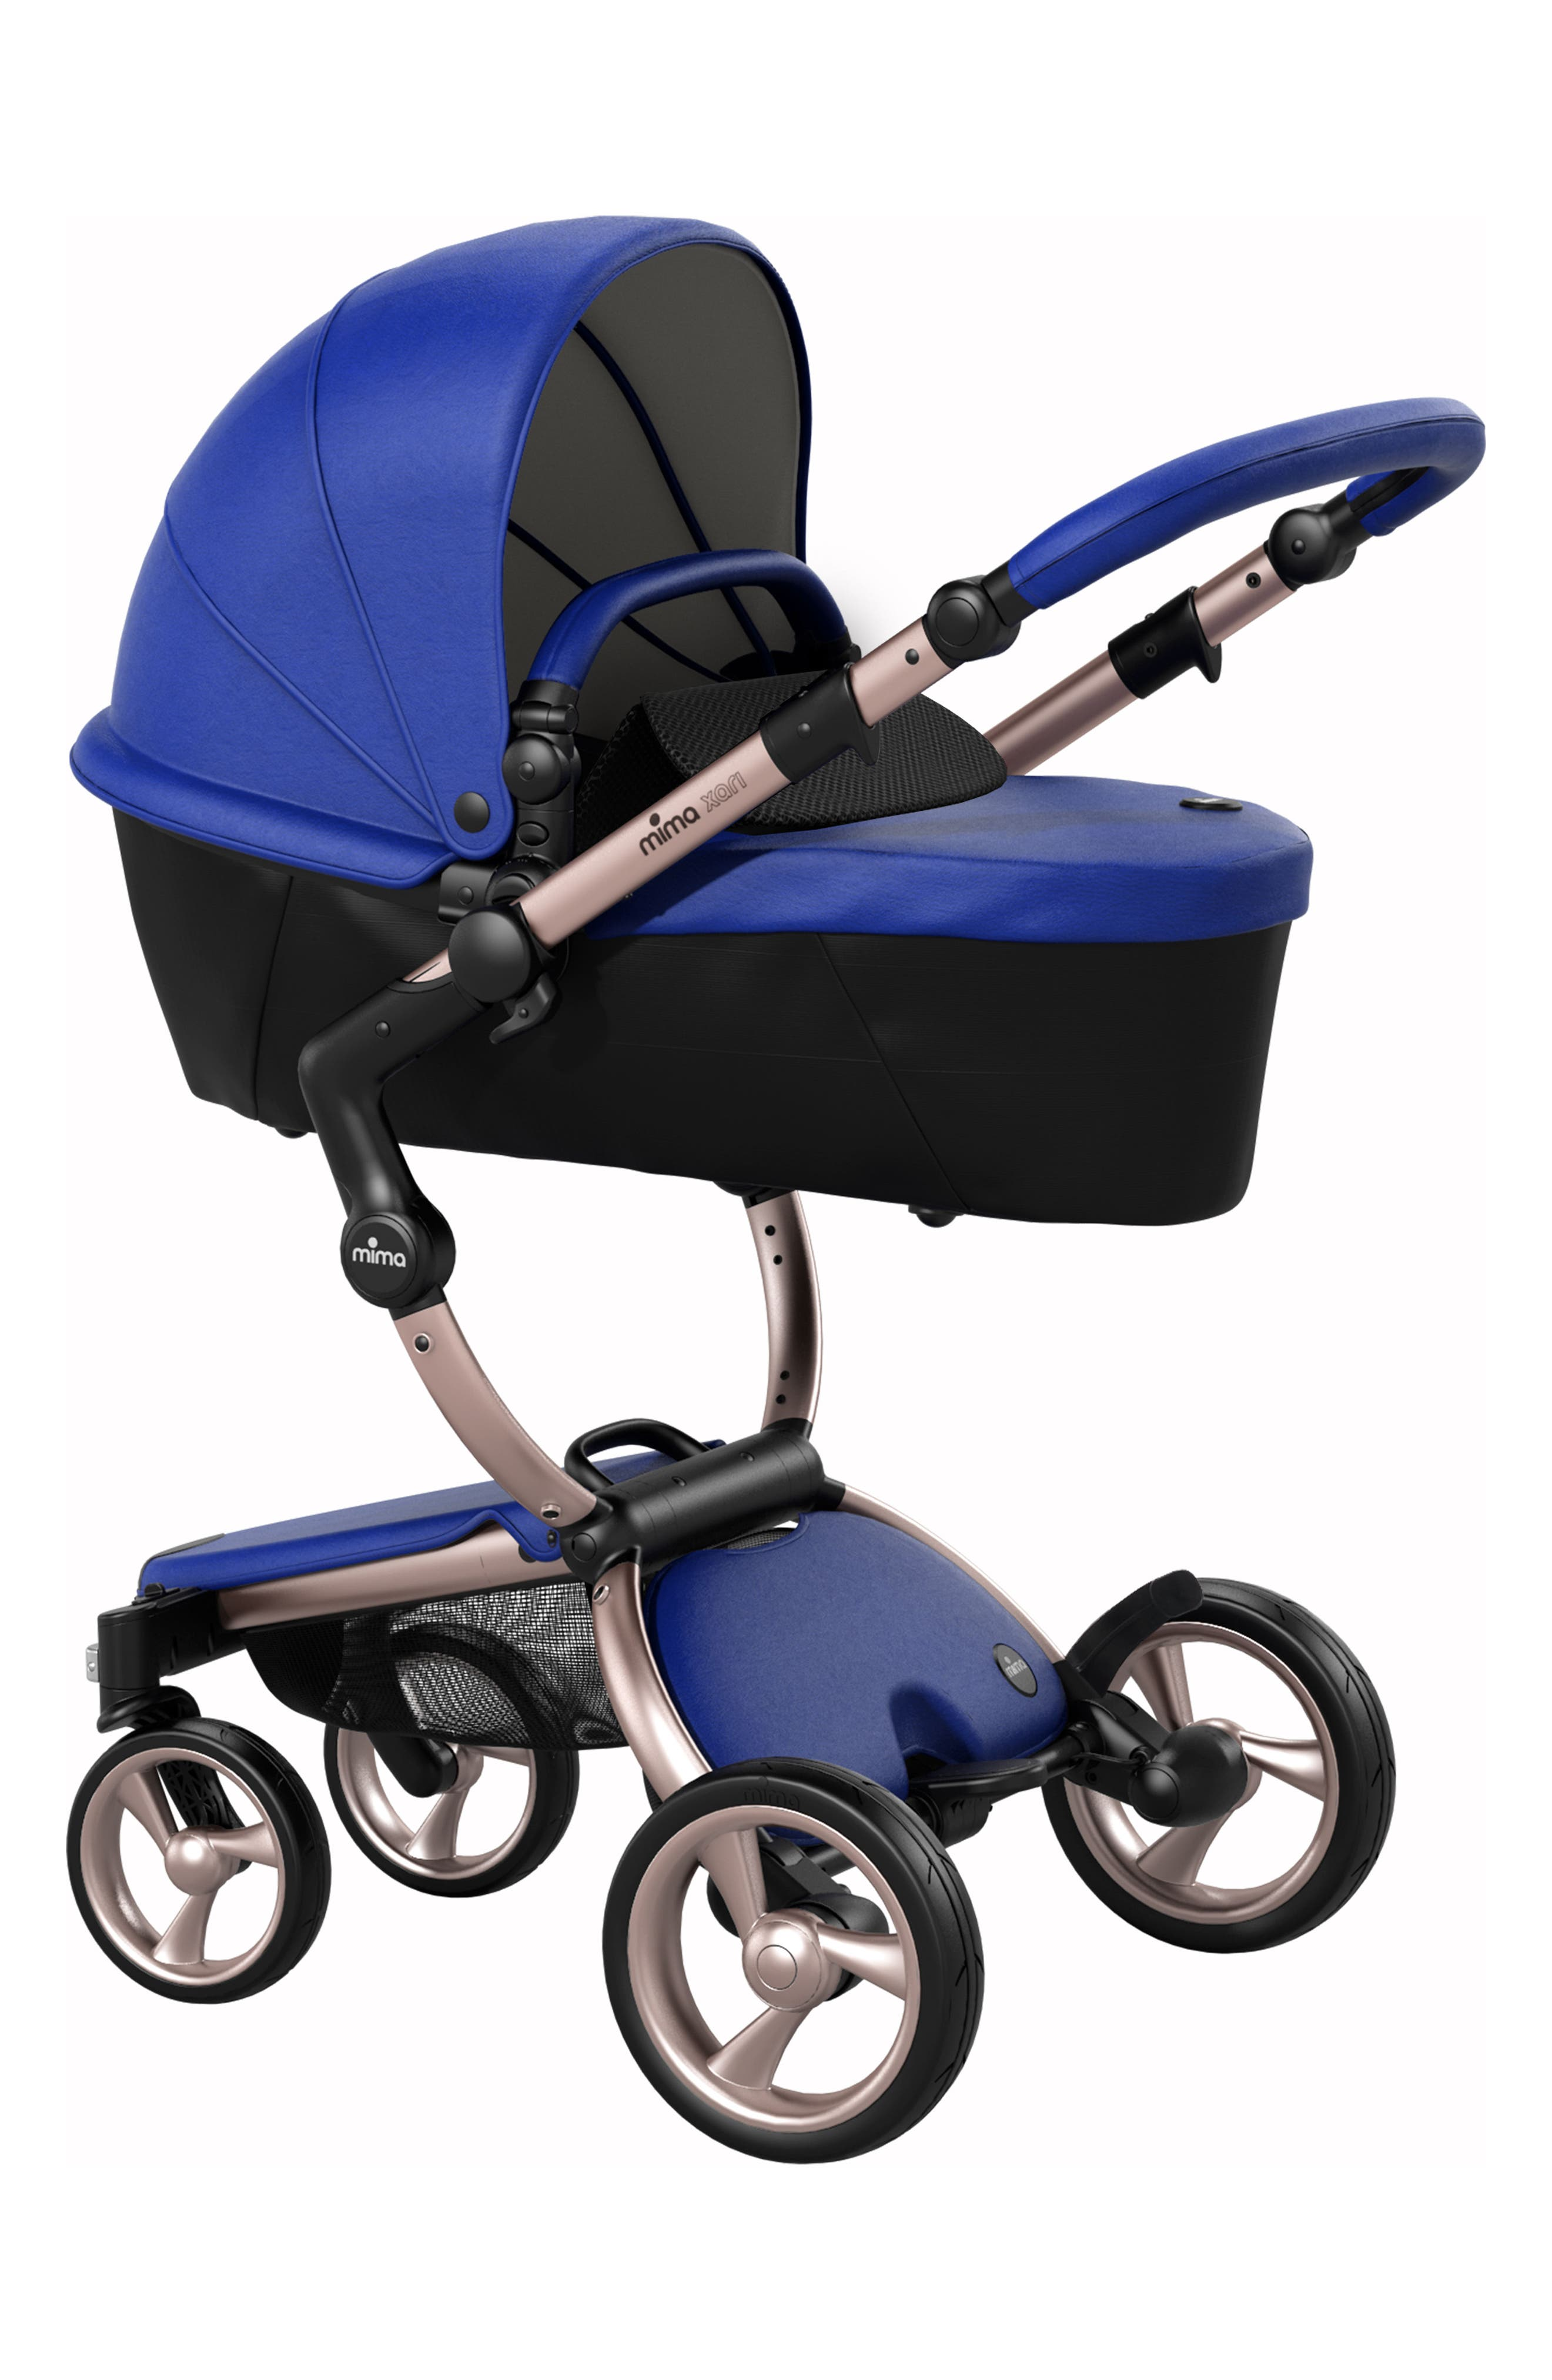 Xari Rose Gold Chassis Stroller with Reversible Reclining Seat & Carrycot,                             Alternate thumbnail 5, color,                             Royal Blue/ Black